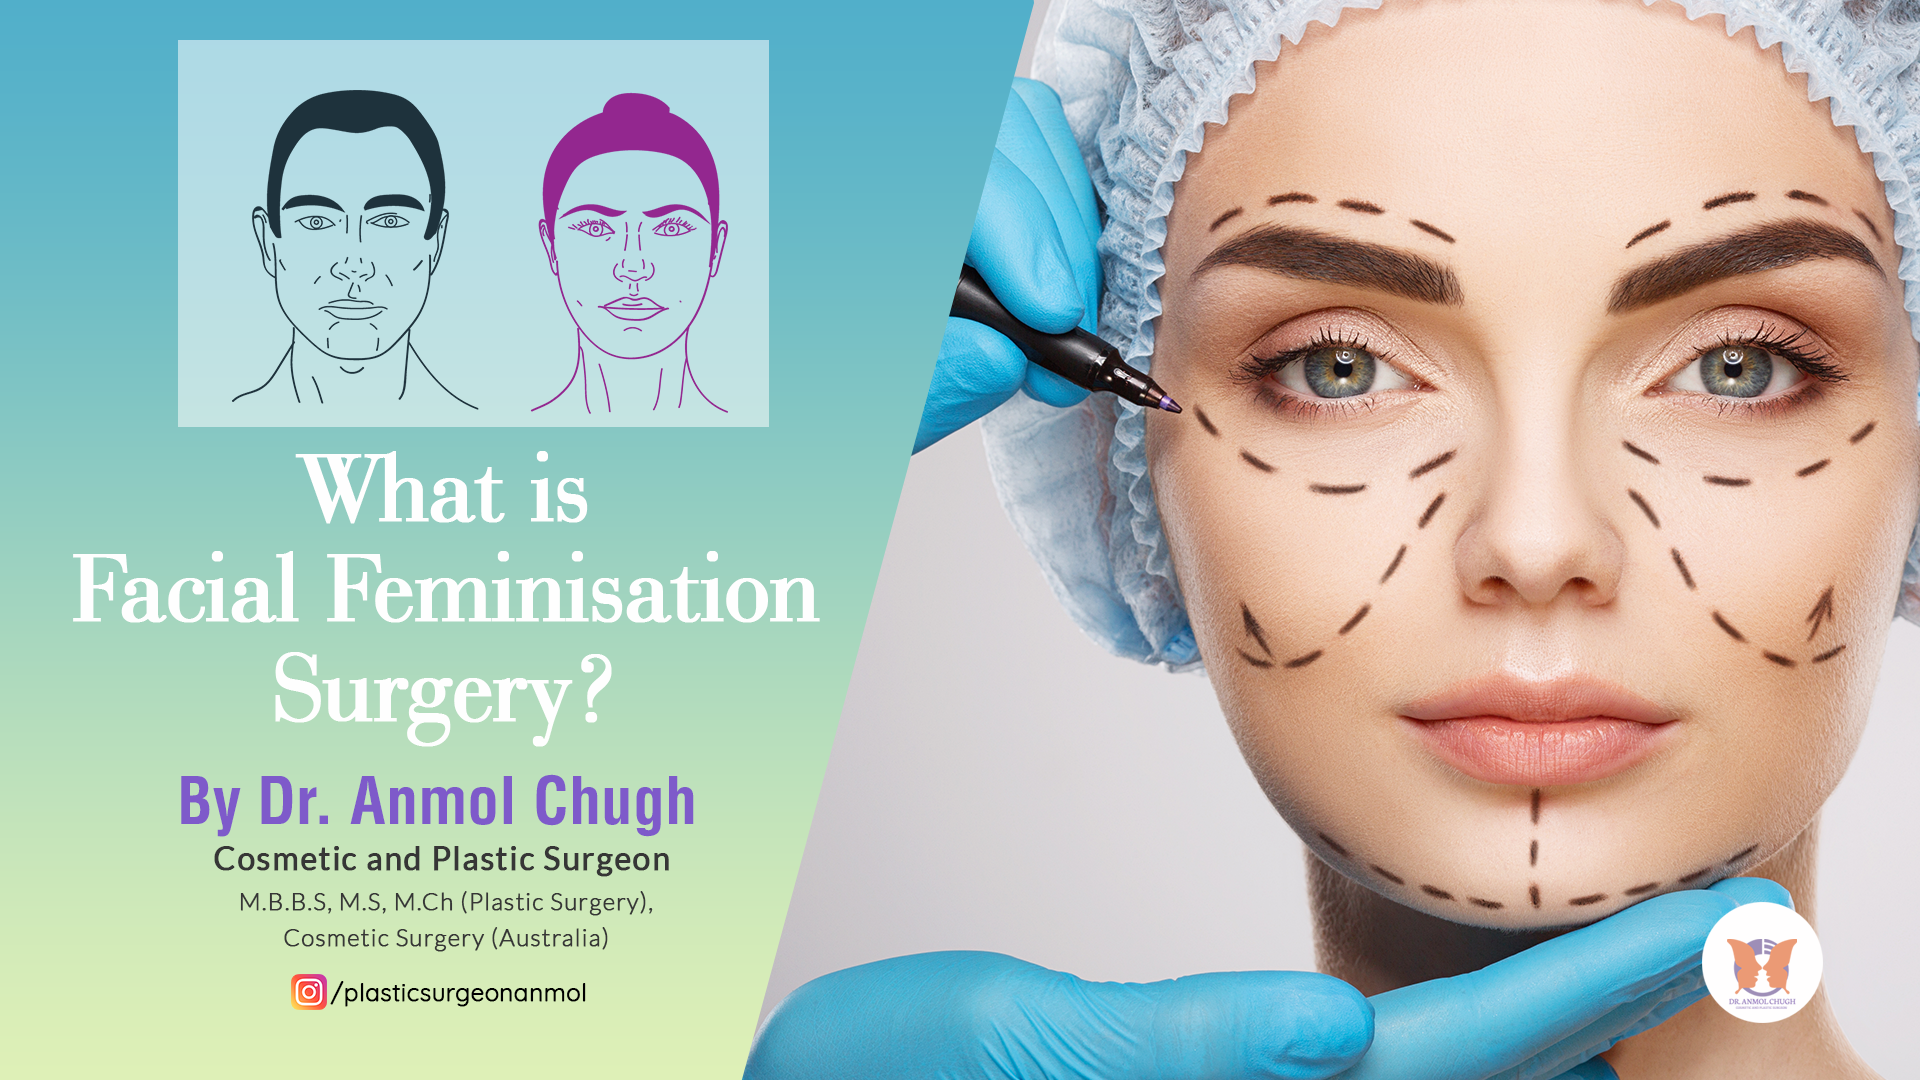 Facial Feminisation Surgery: Things You Should Know